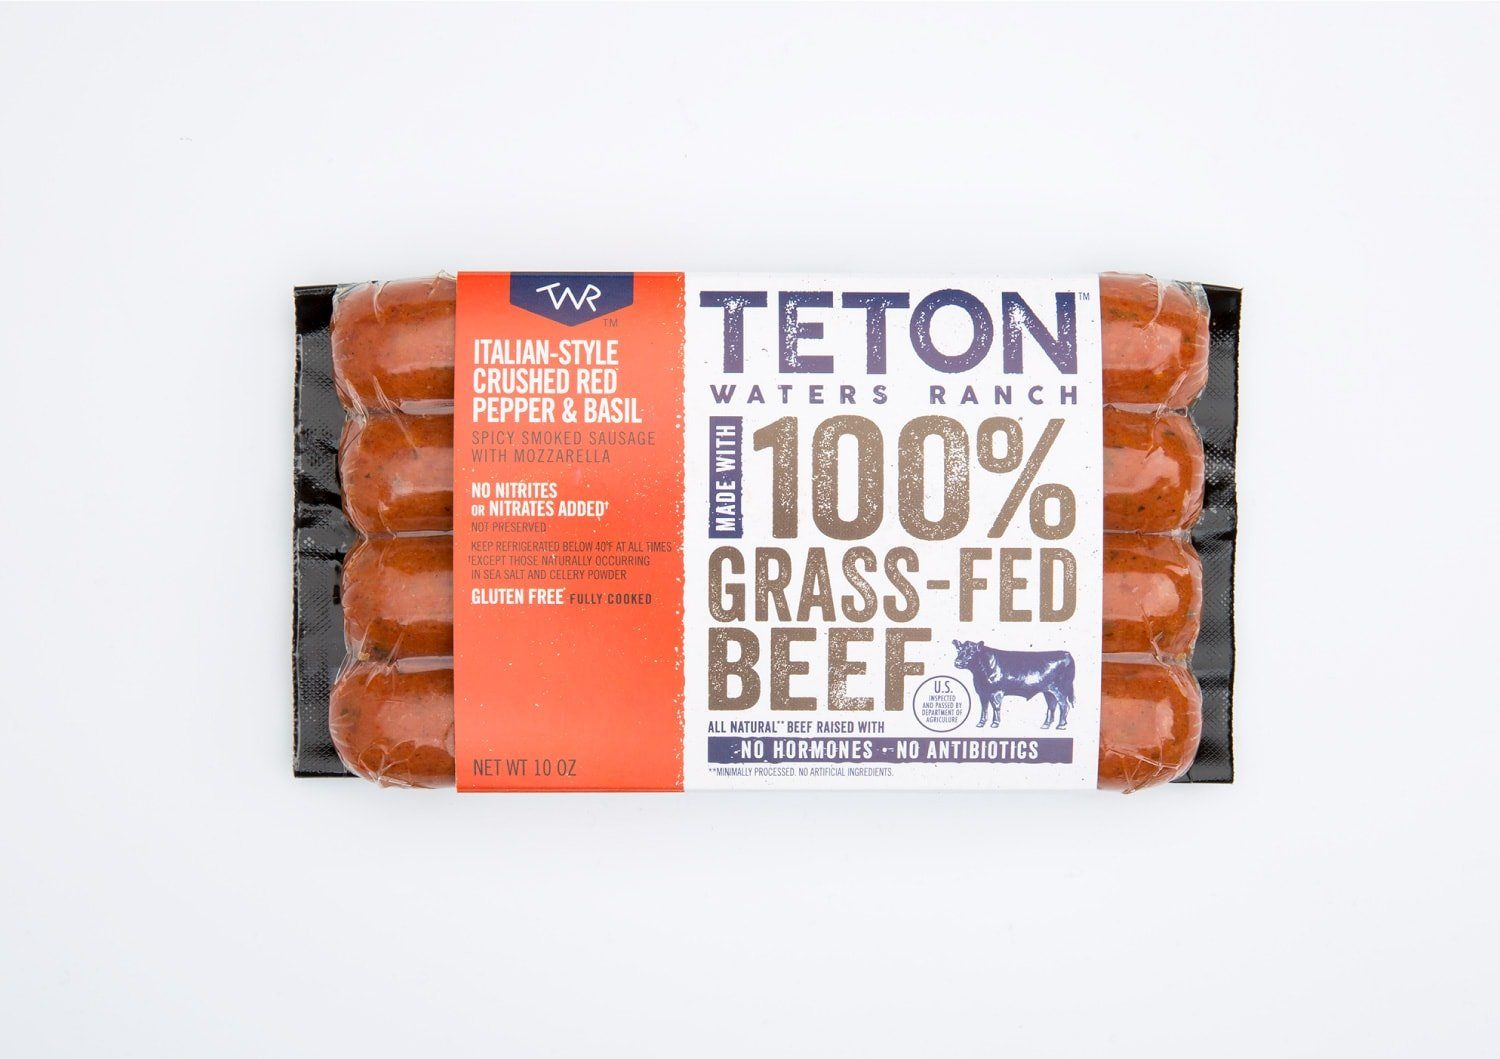 Grass-Fed Beef Packaging